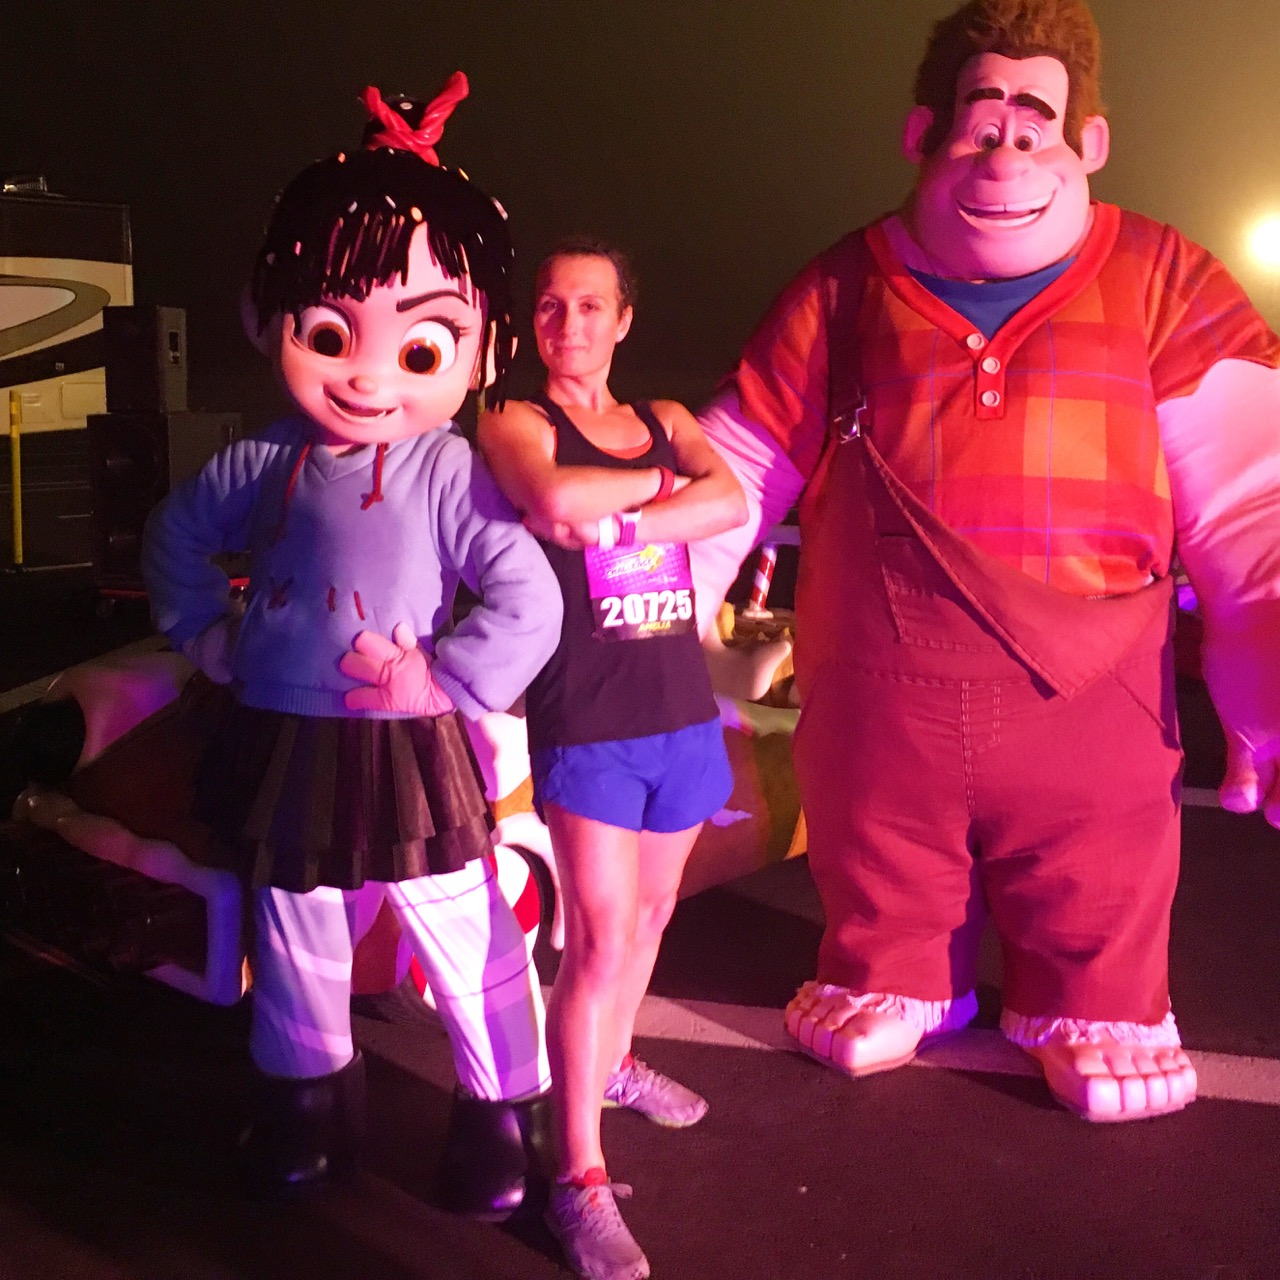 Vanellope and Wreck-It Ralph!